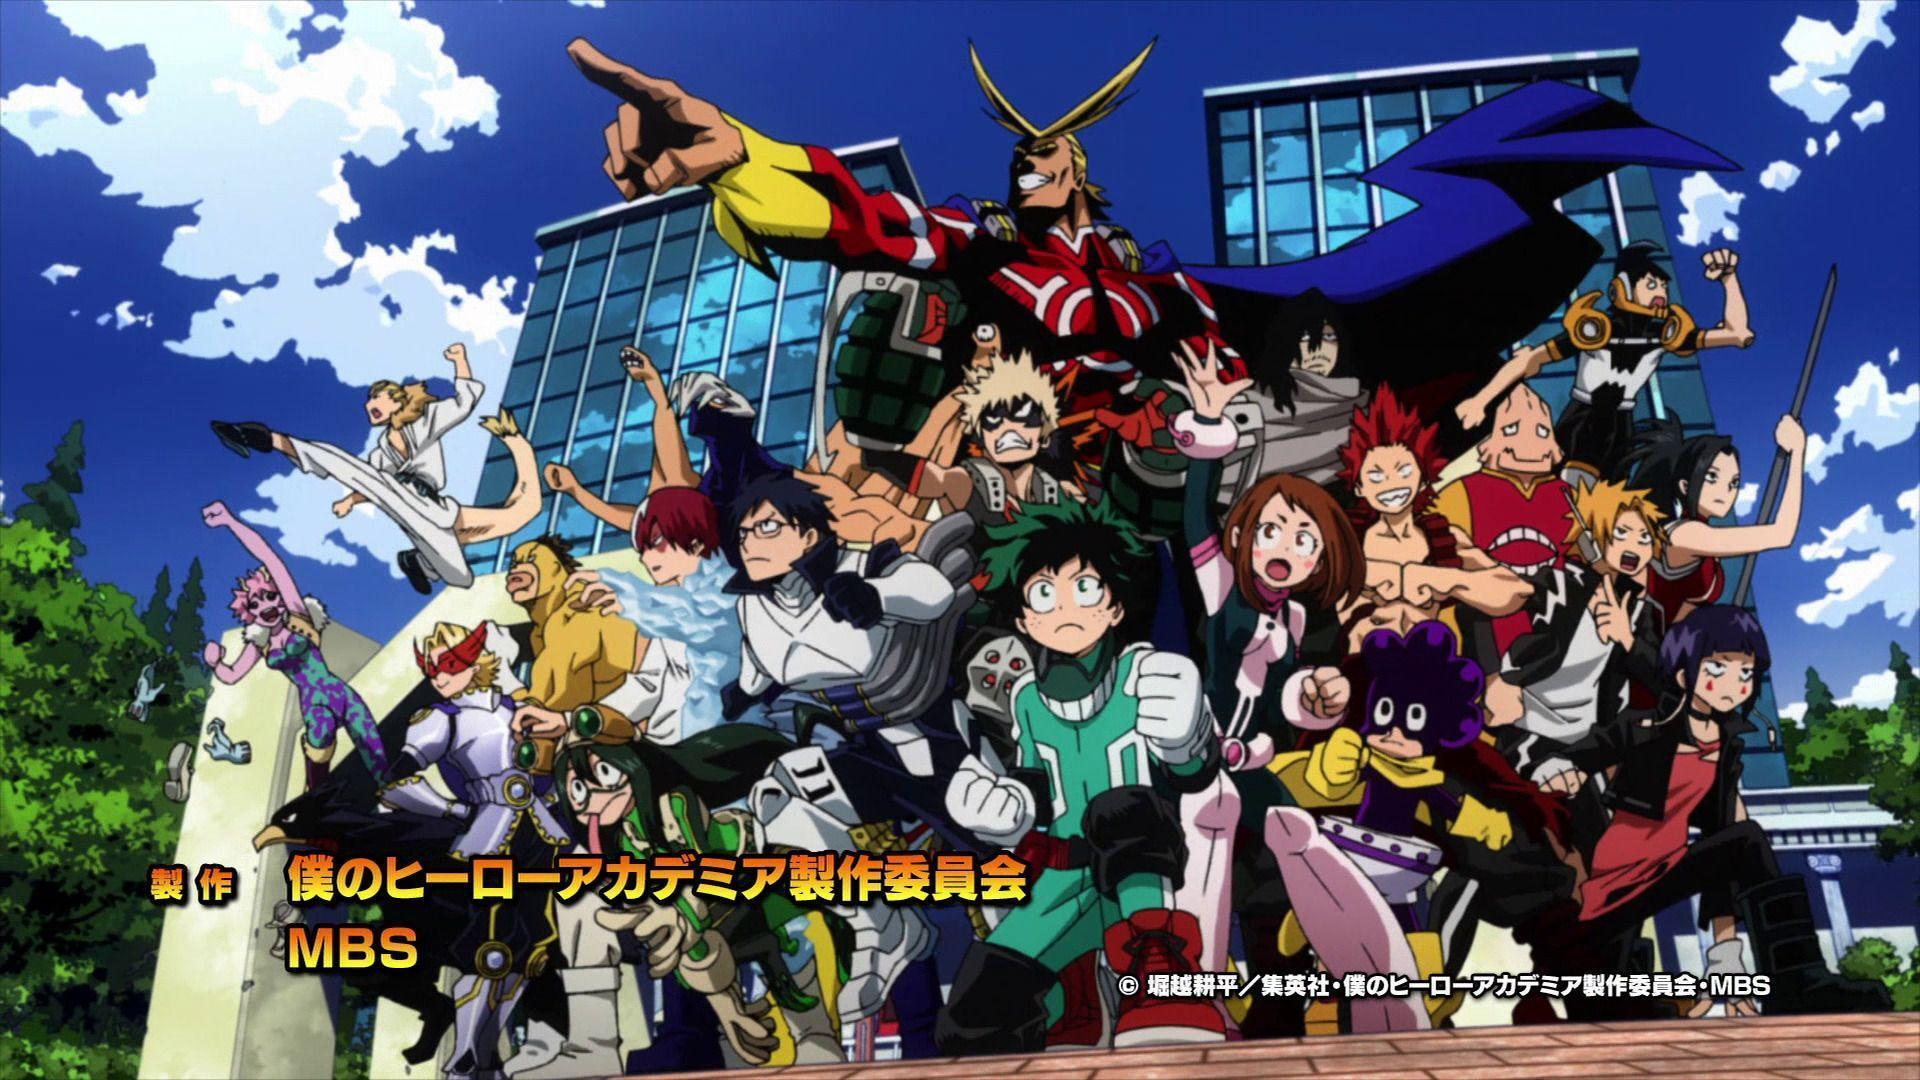 Boku No Hero Academia Wallpapers Free Pictures On Greepx